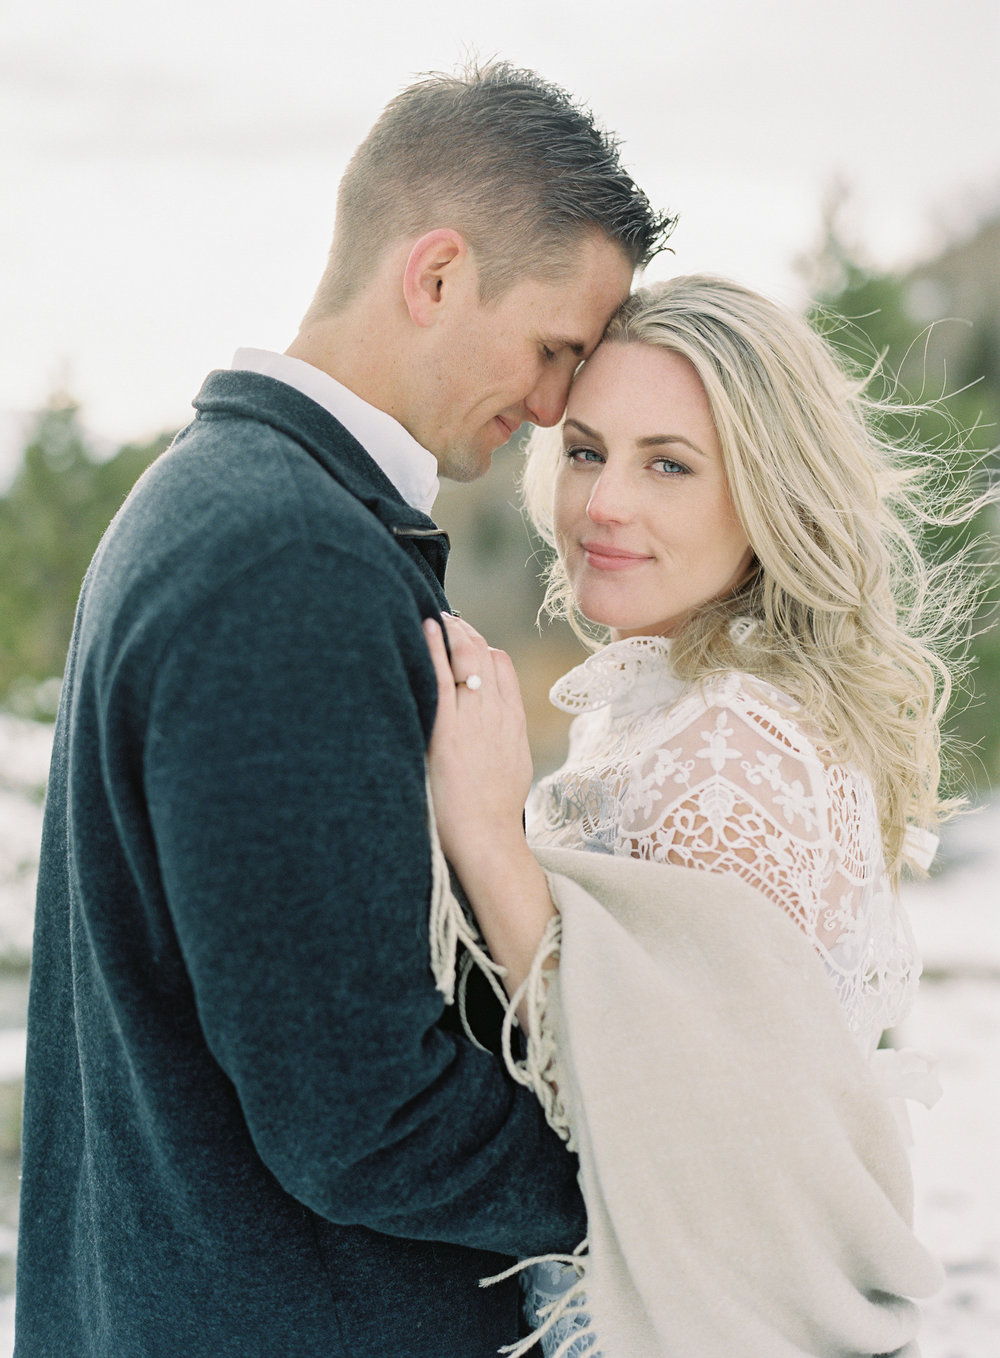 Sarah + John - Breckenridge, COLORADO